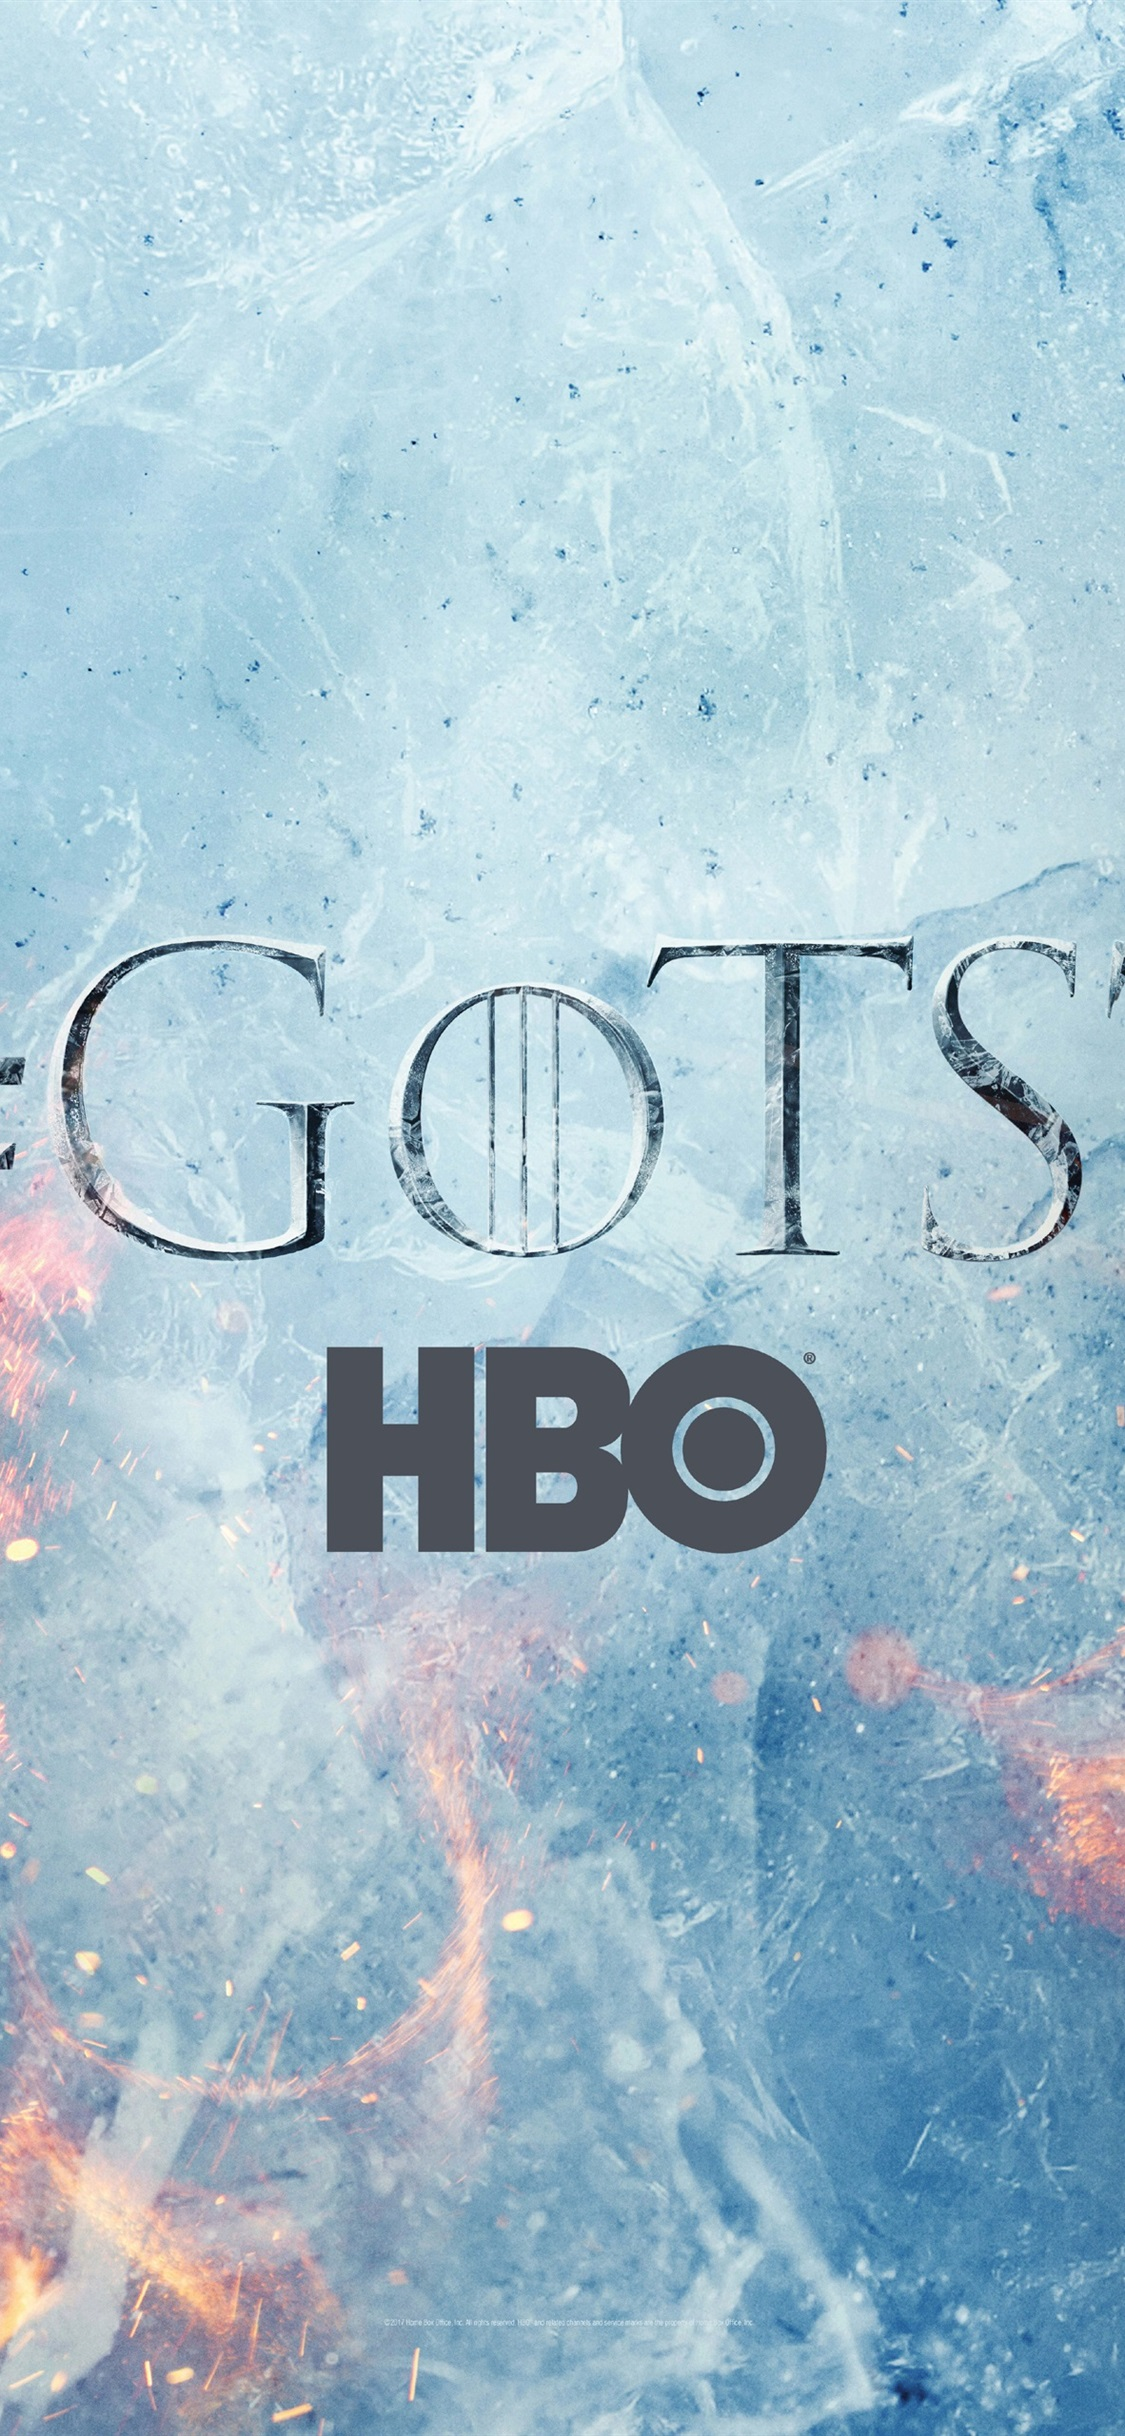 Game Of Thrones Season 7 Logo 1125x2436 Iphone 11 Pro Xs X Wallpaper Background Picture Image